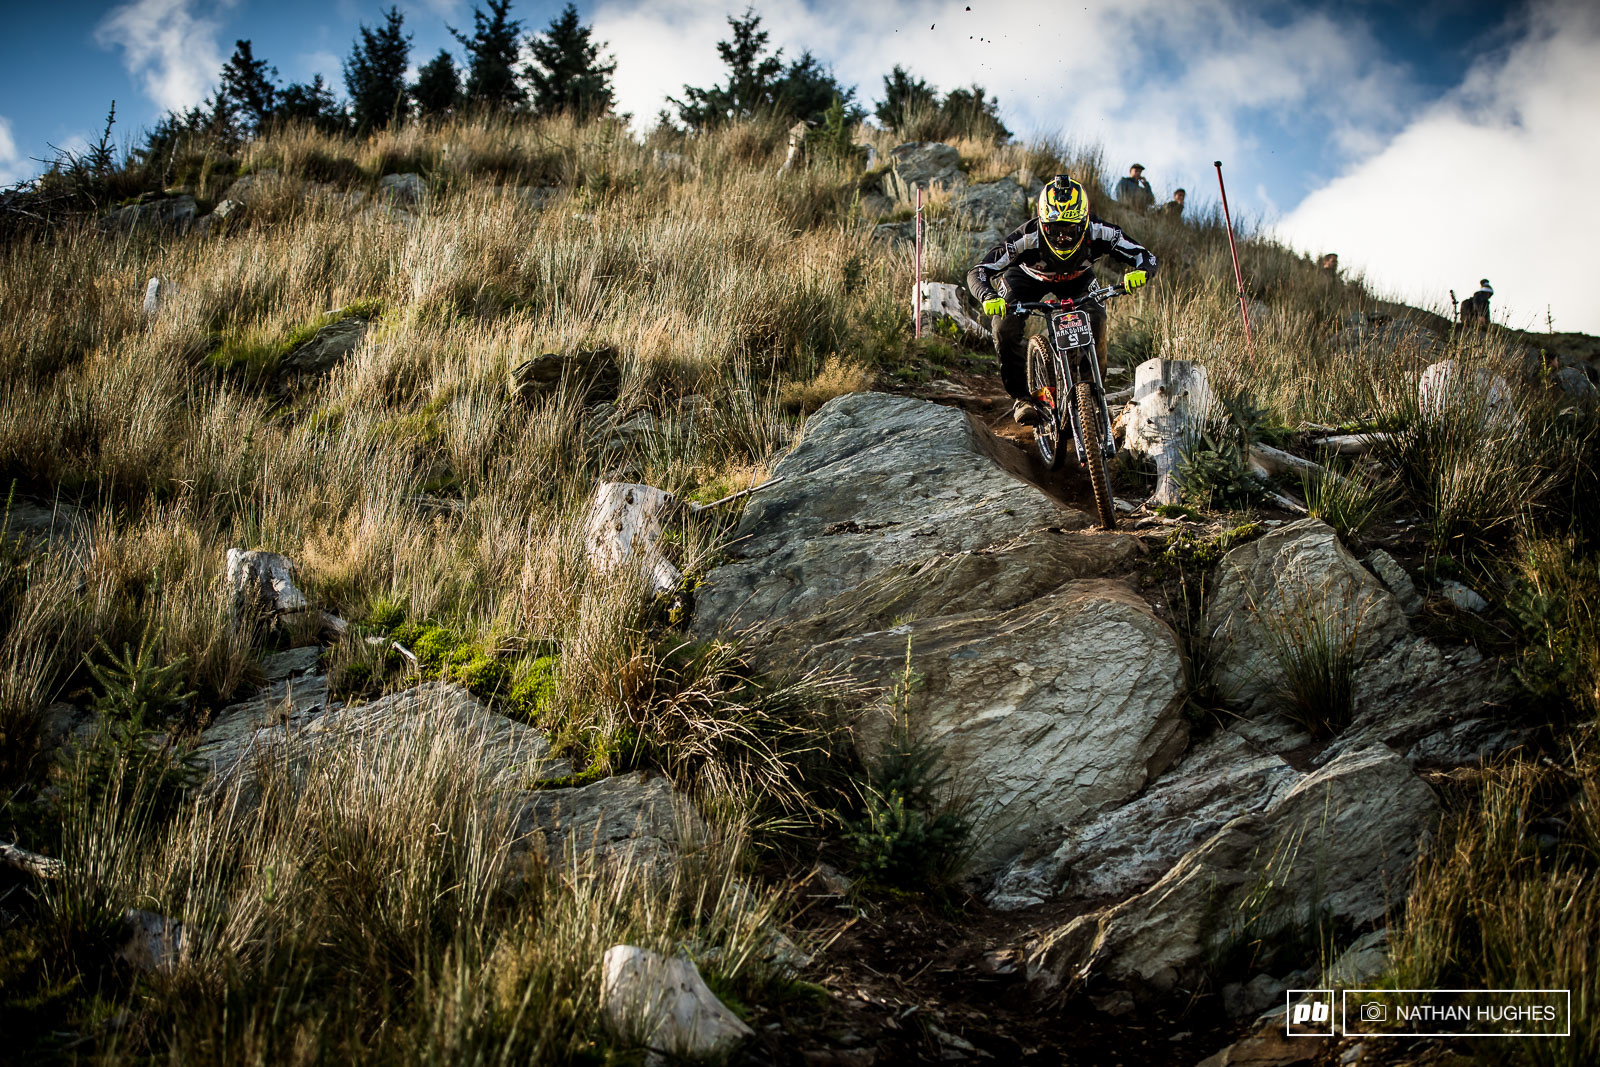 Graeme Mudd tackles the steep tech on the deforested middle section.